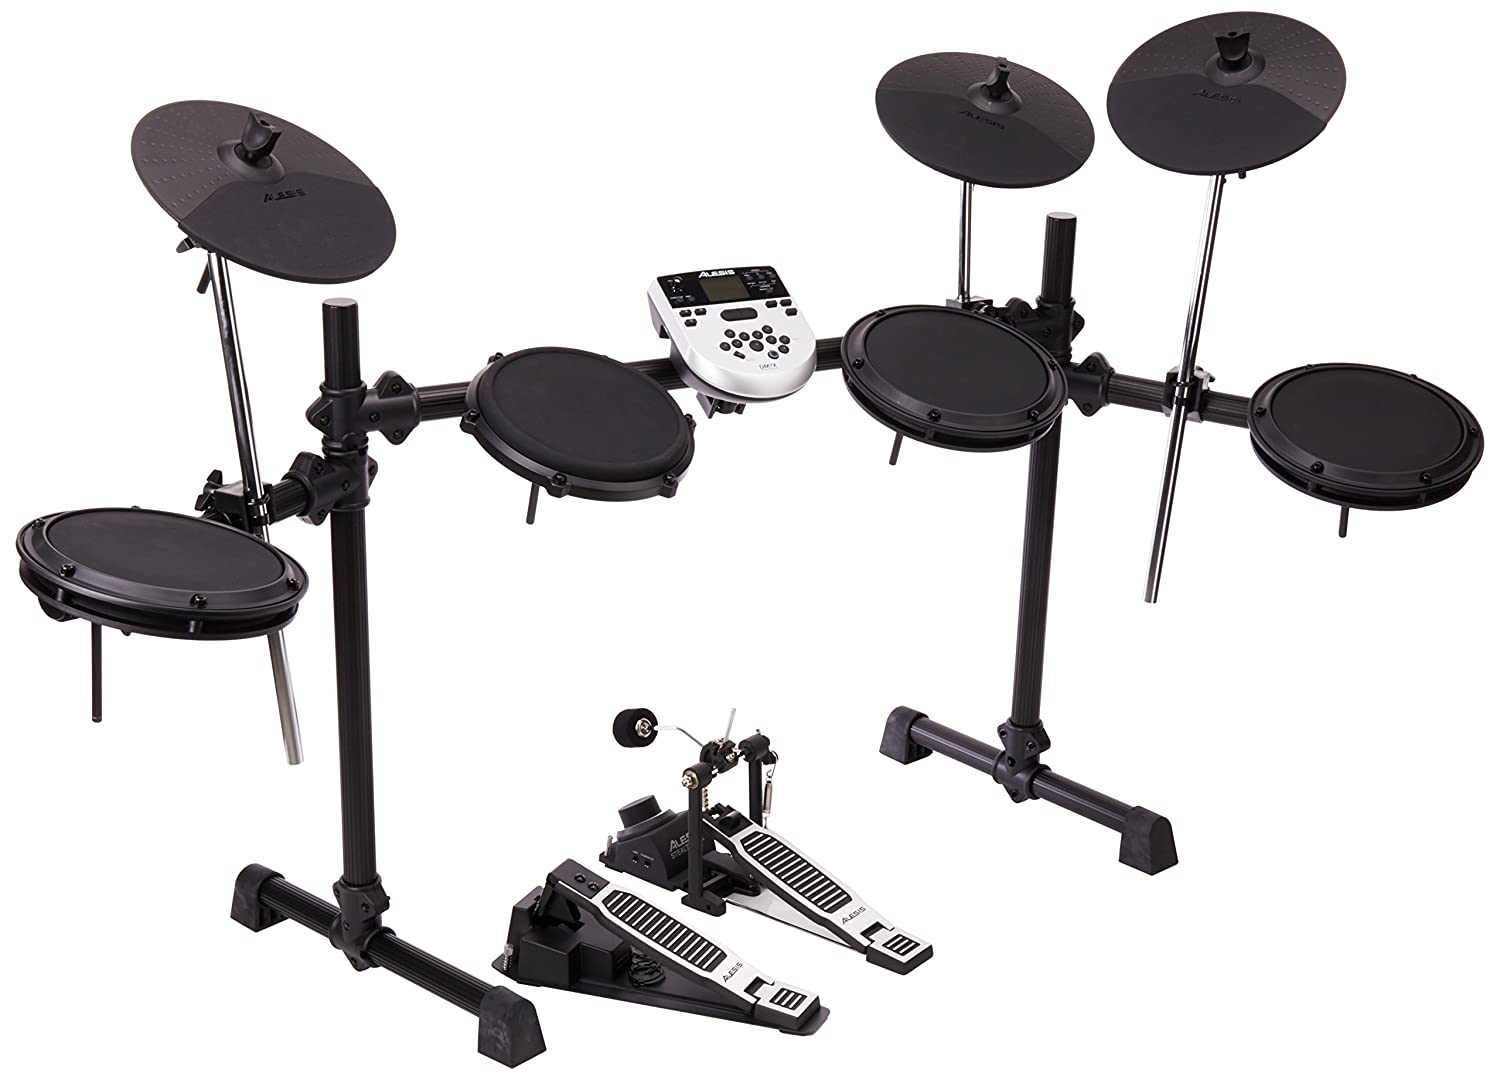 Alesis DM7X Review